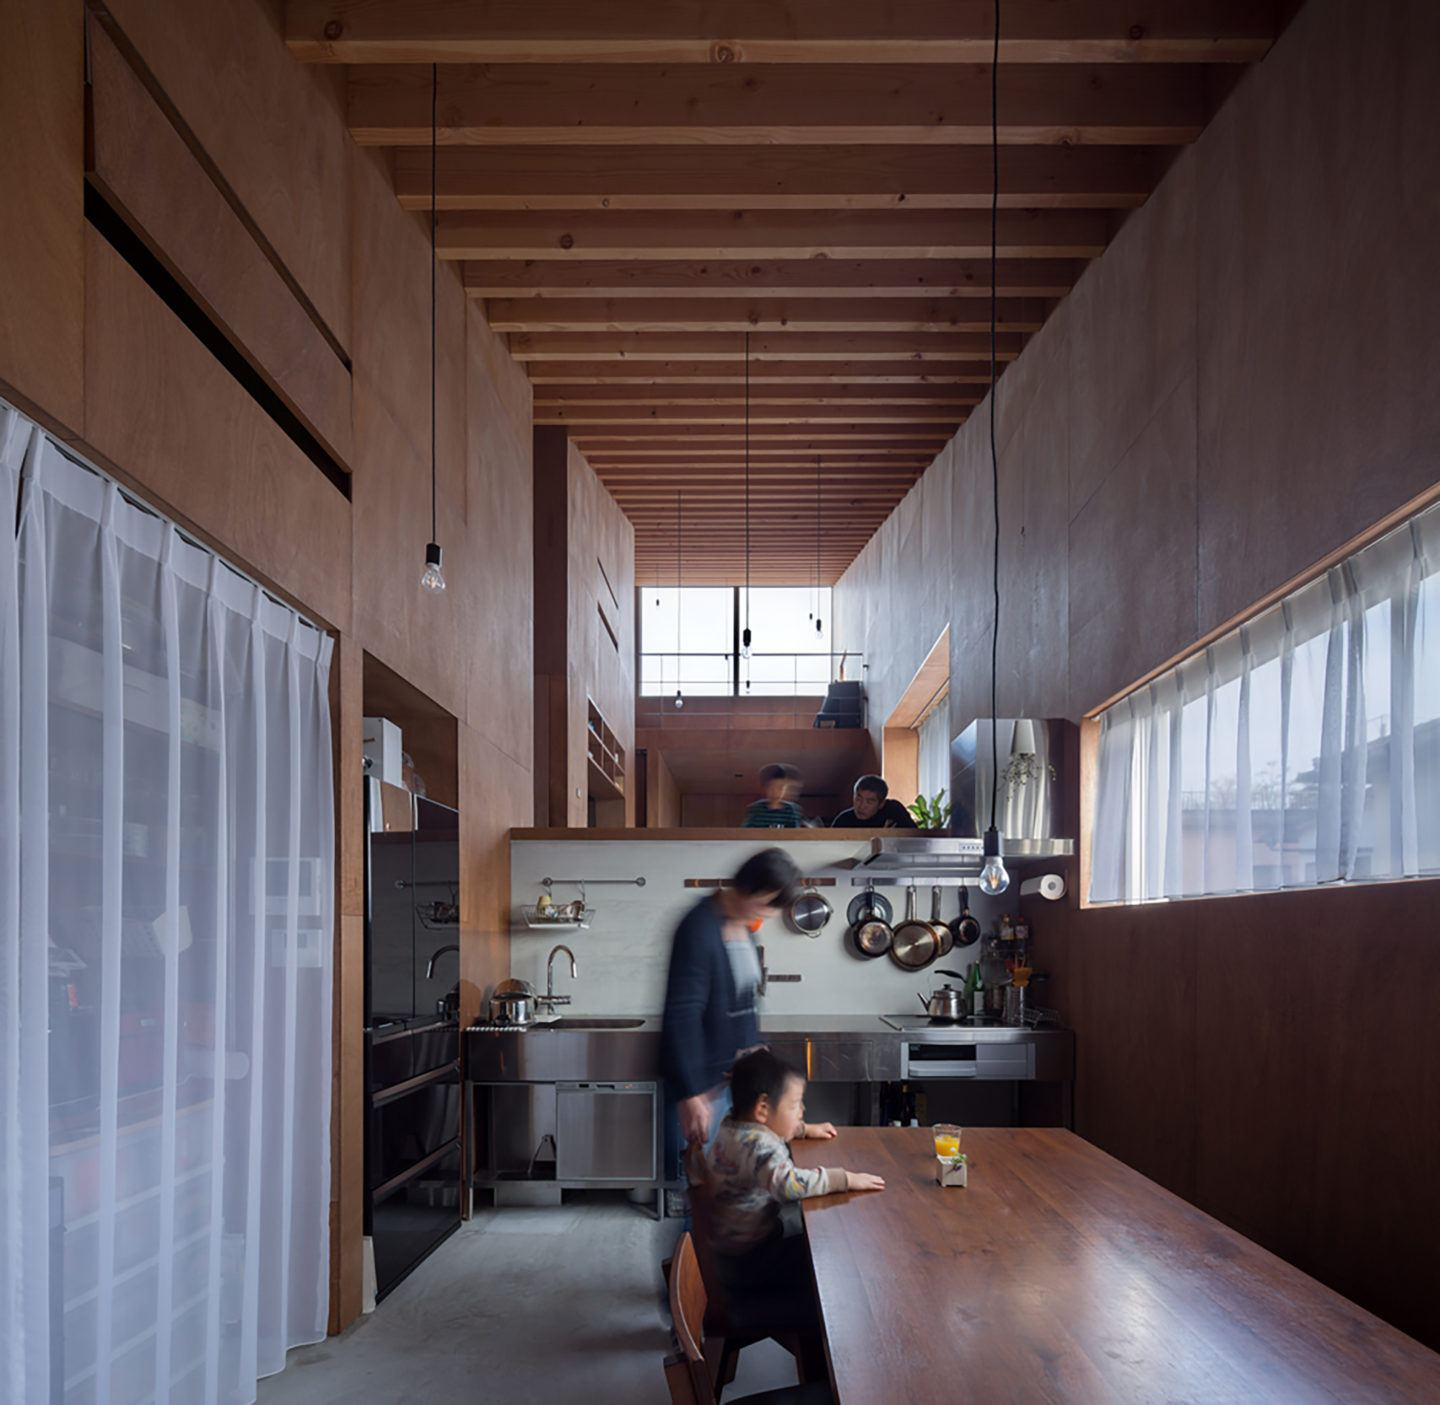 IGNANT-Architecture-Matsuyama-And-Associates-Layer-House-1